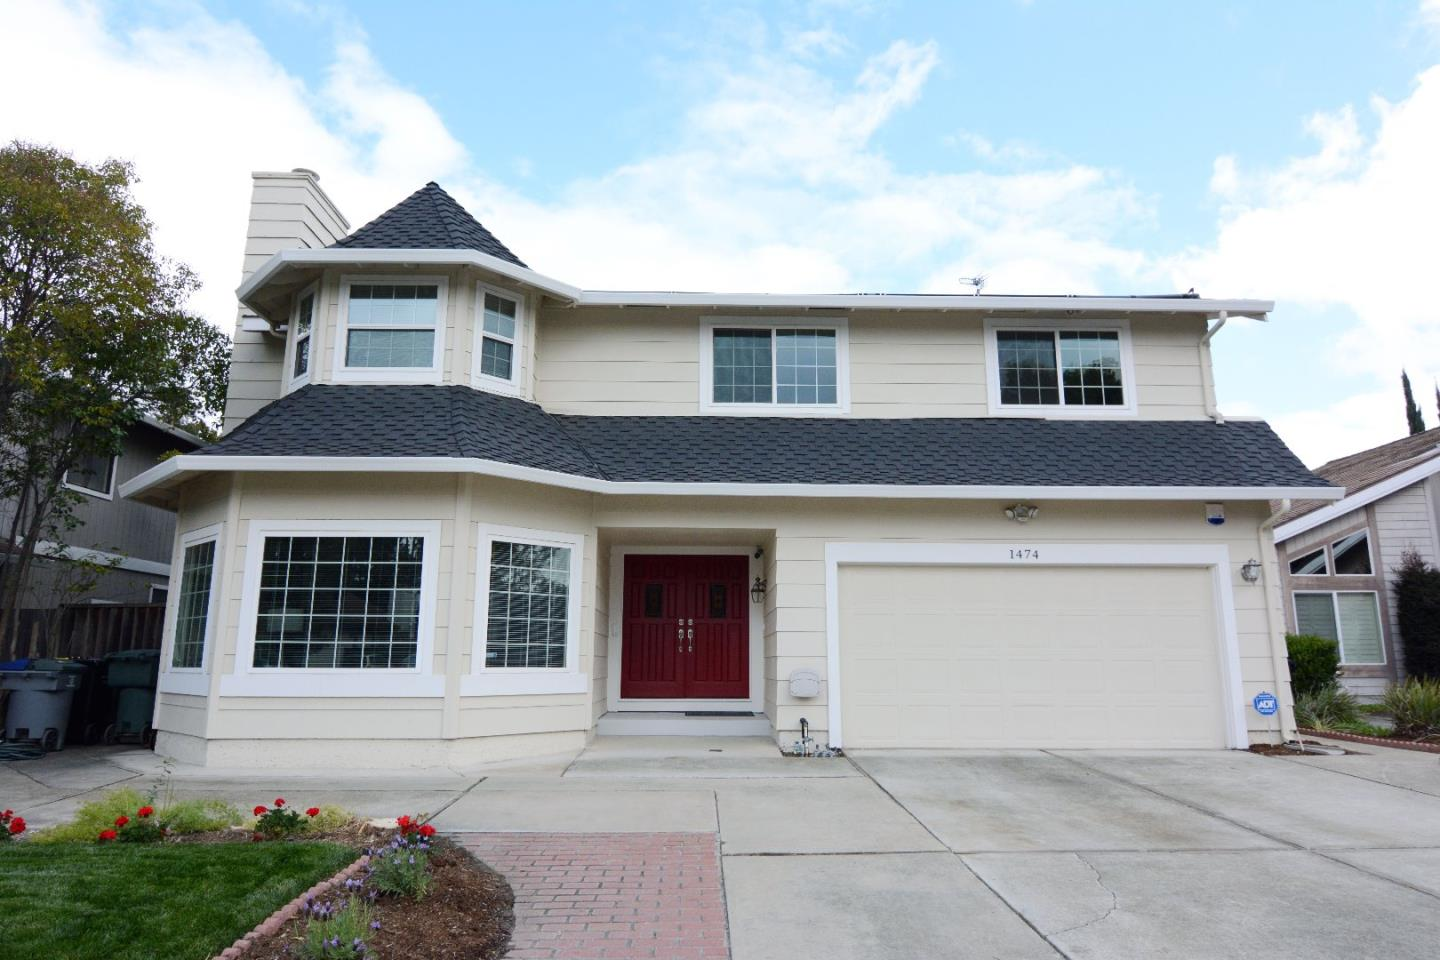 Single Family Home for Sale at 1474 Dartshire Court 1474 Dartshire Court Sunnyvale, California 94087 United States